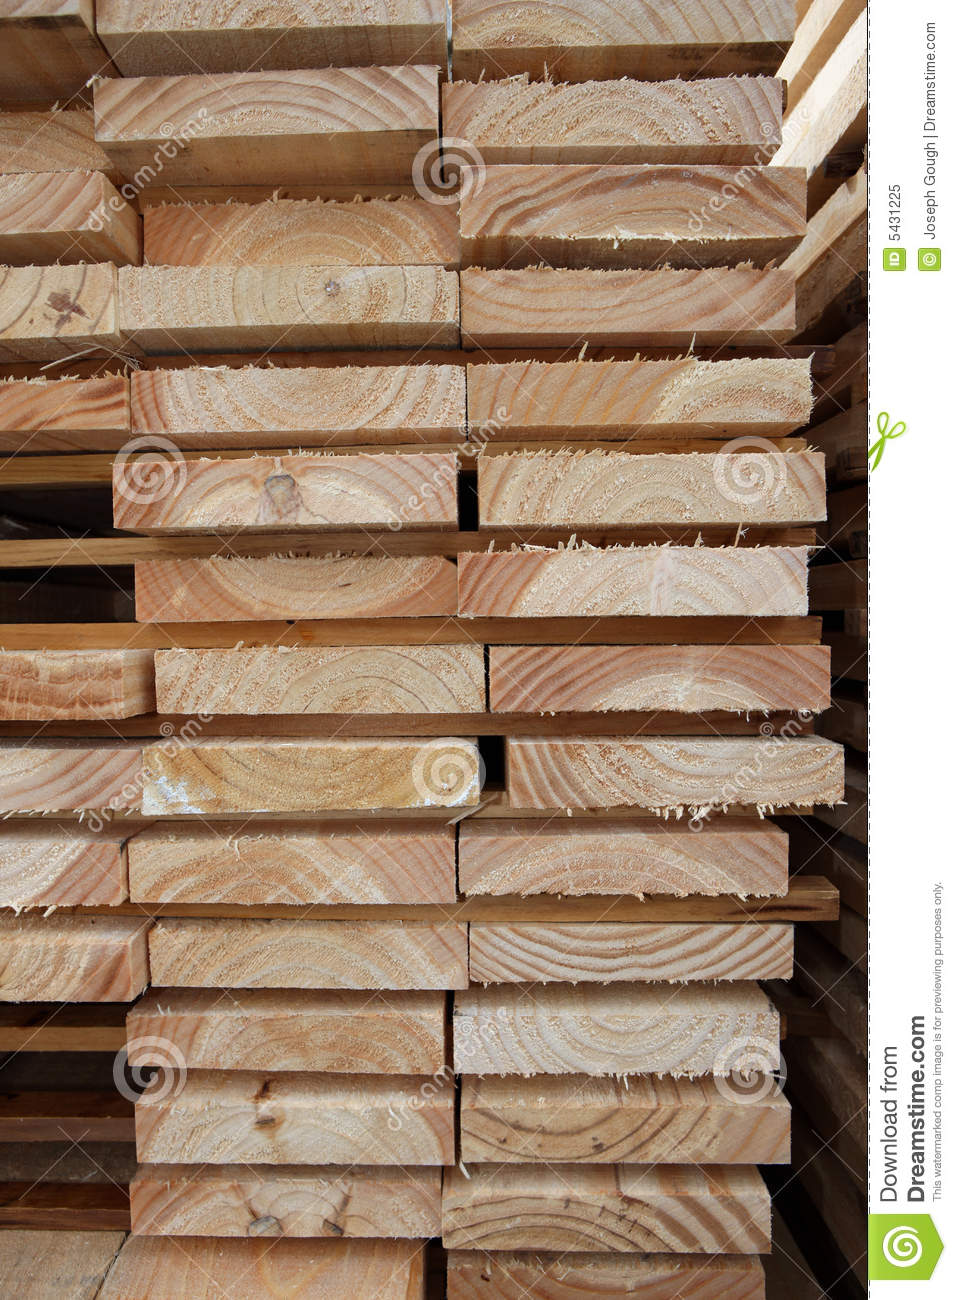 Kiln-Dried Timber Planks stock image. Image of vertical